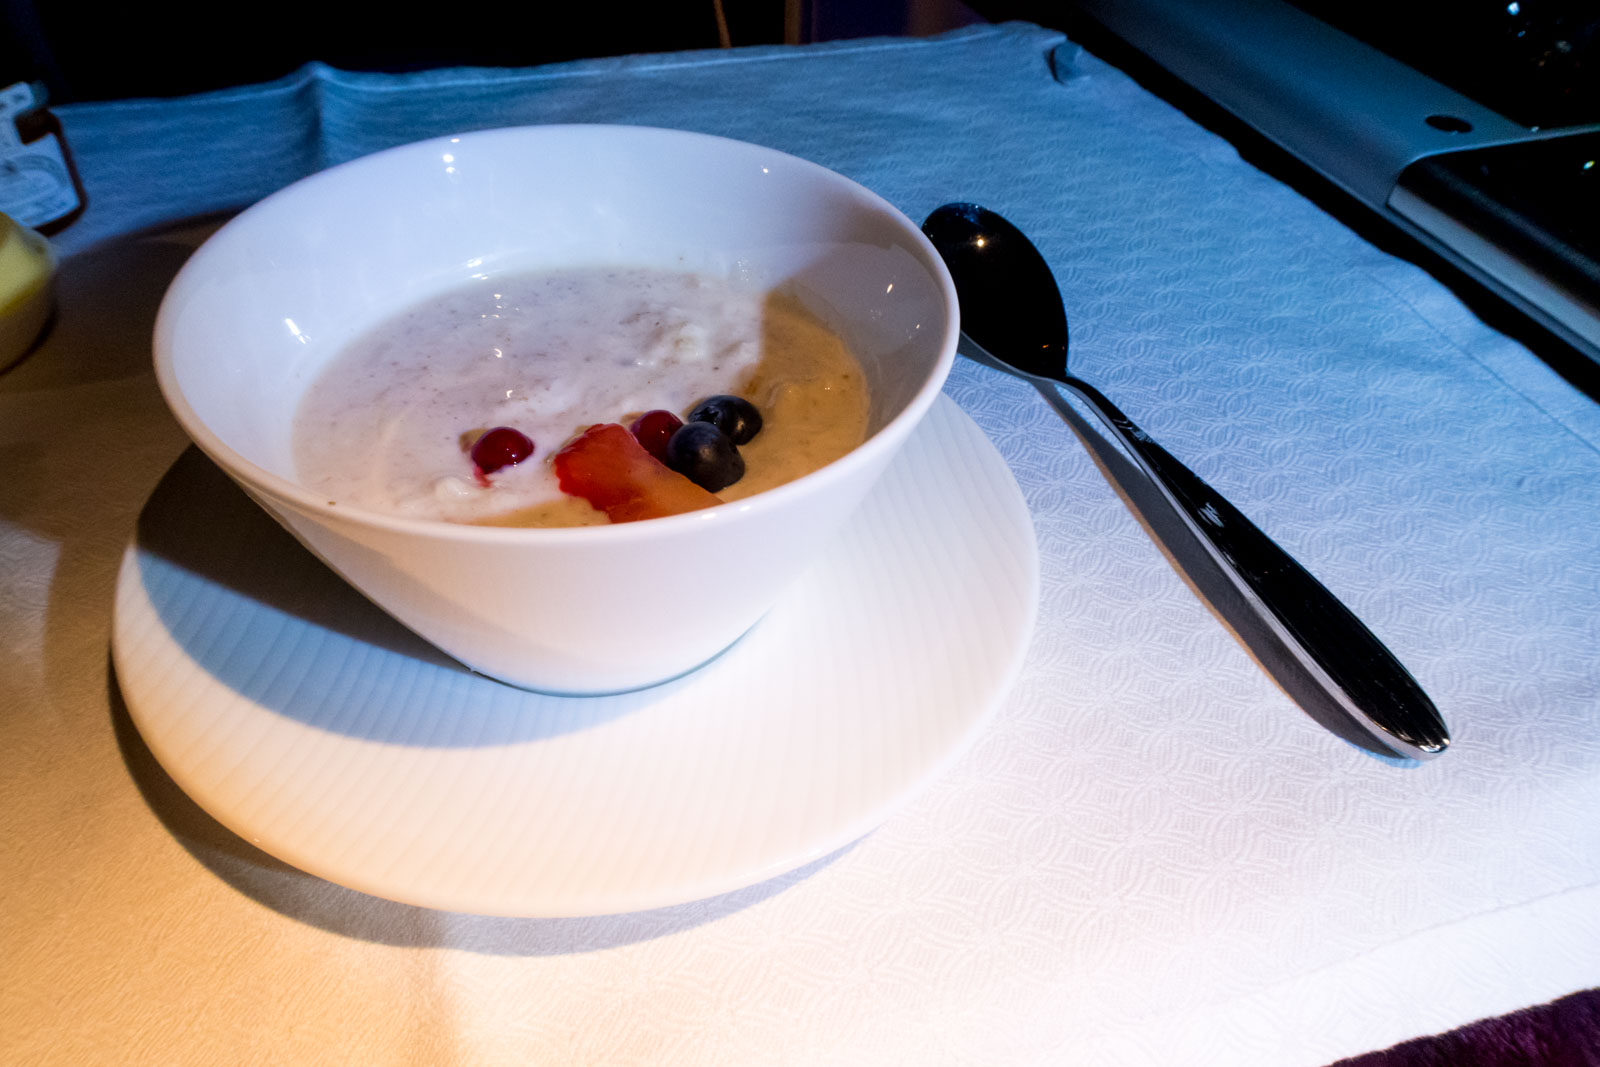 Qatar Airways Bircher Muesli